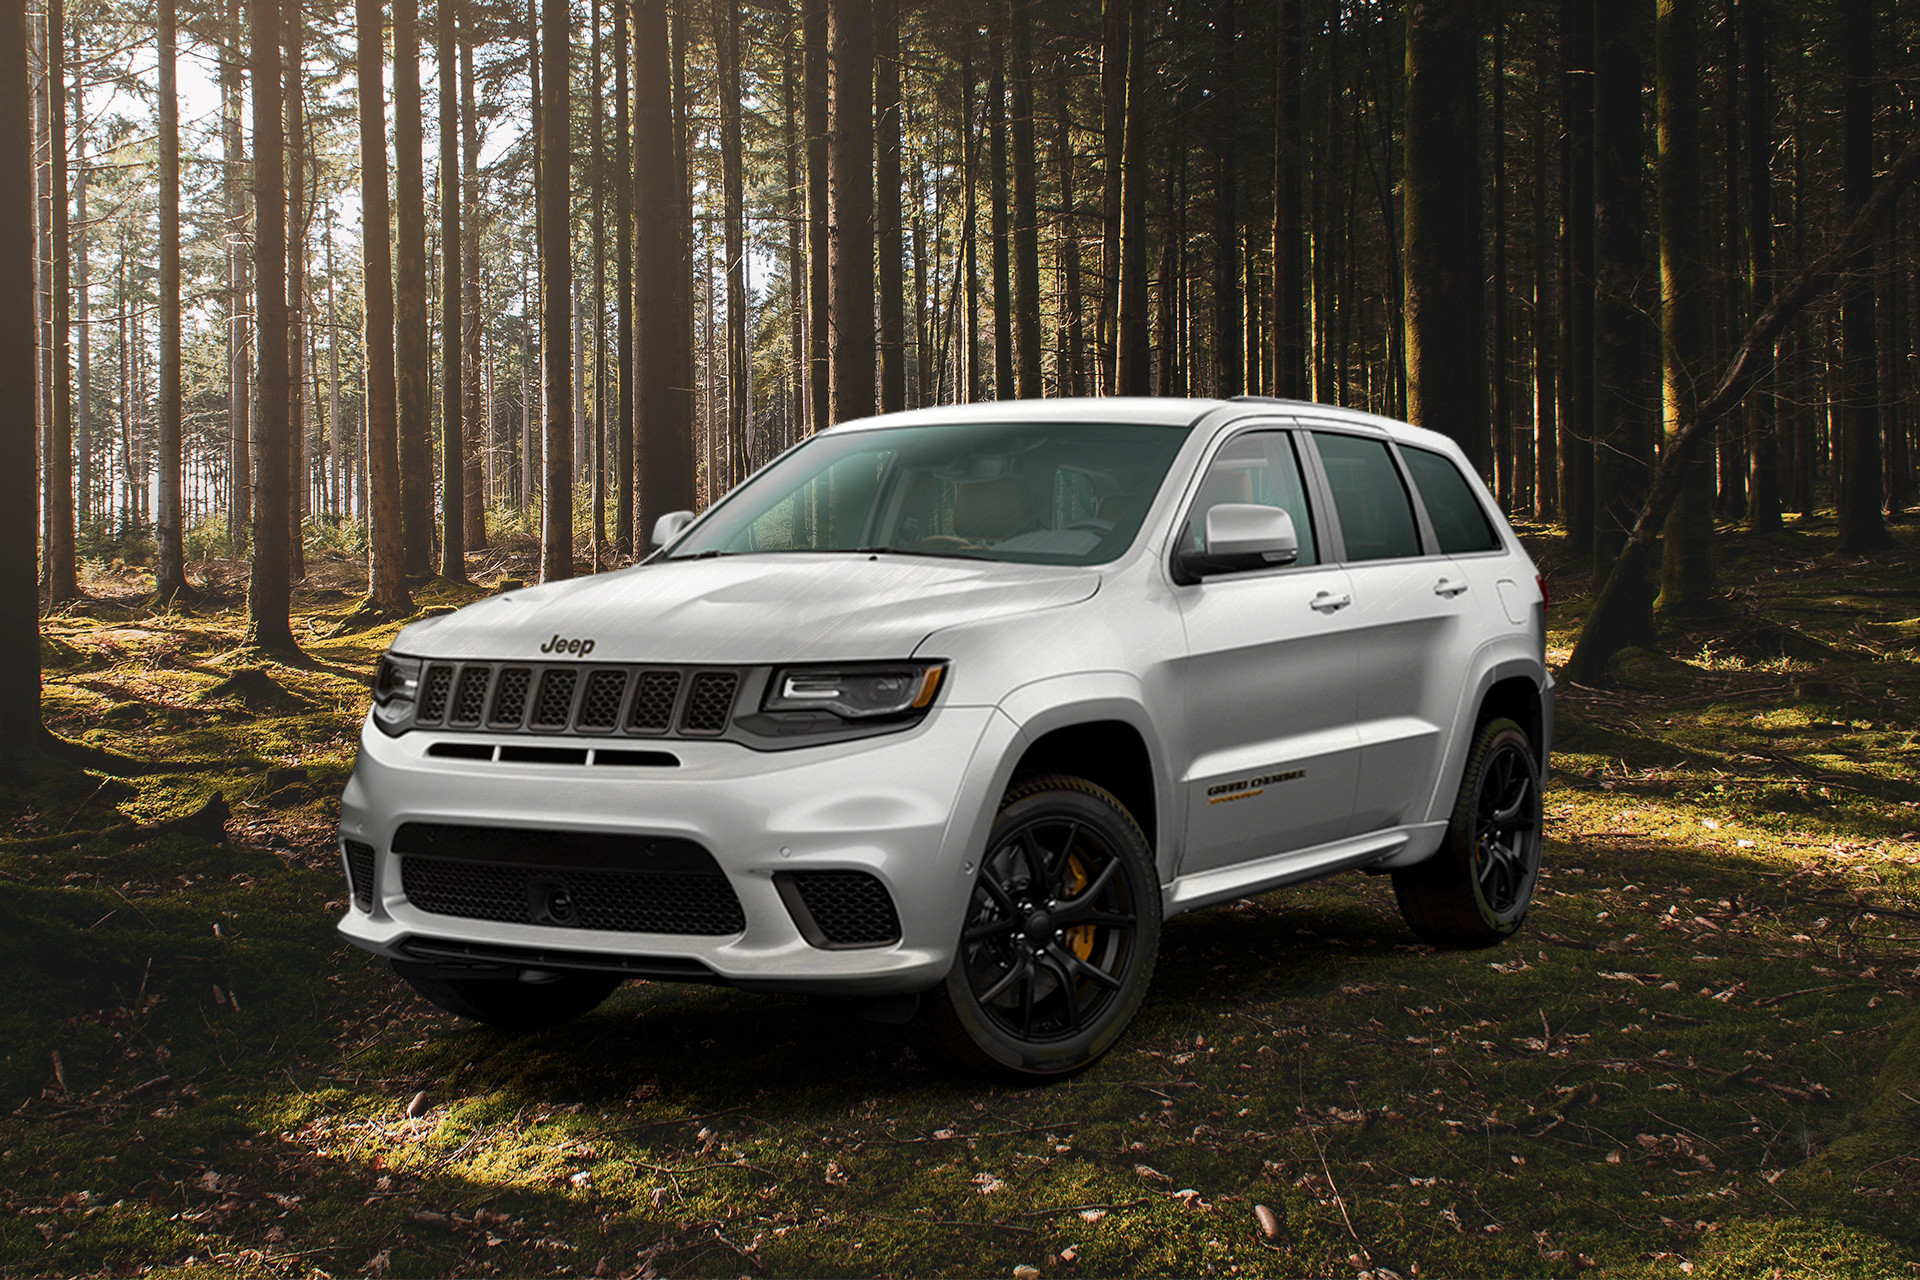 White 2020 Jeep Grand Cherokee parked in the wood